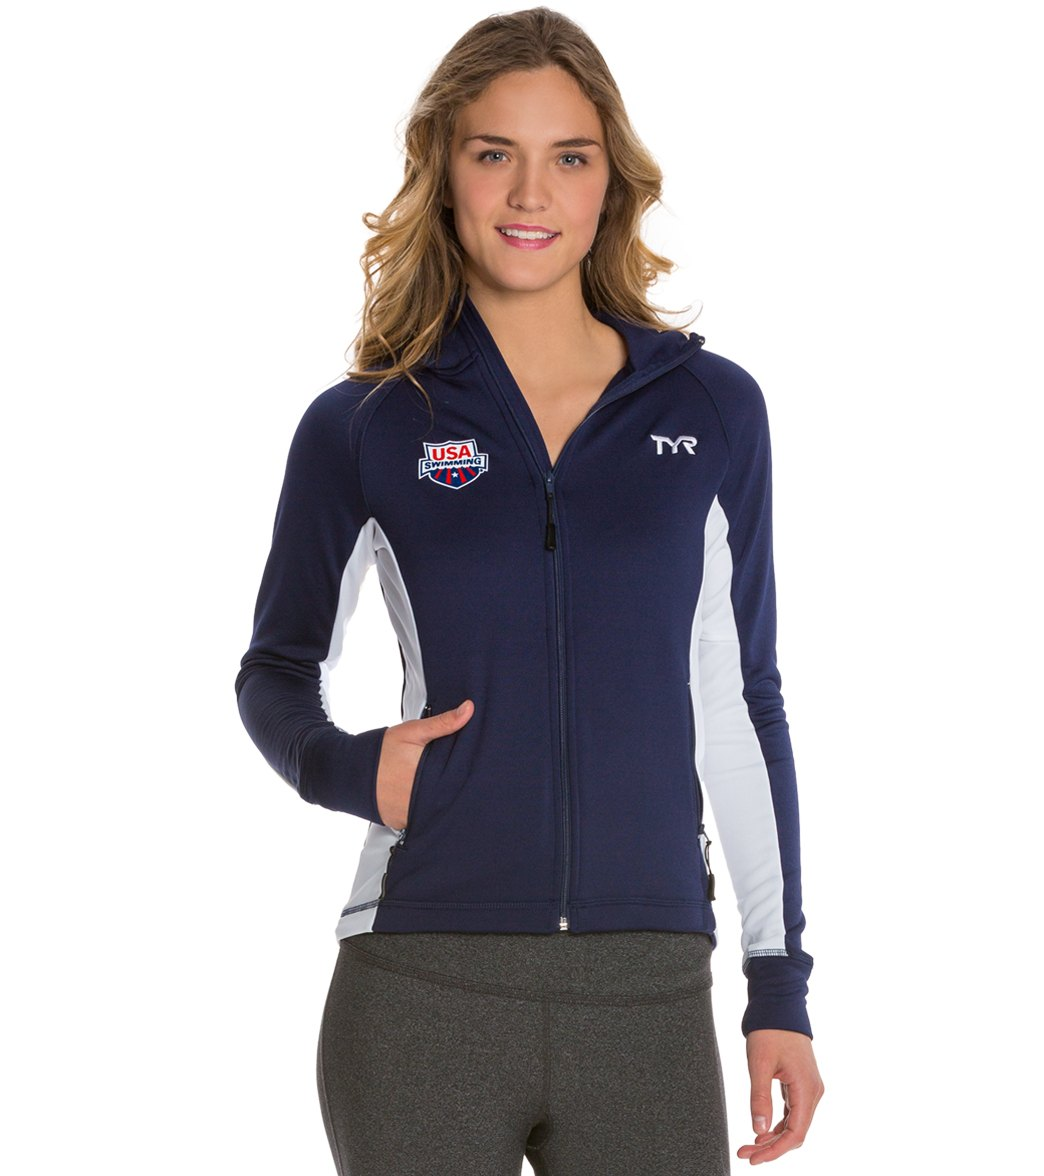 4d31a927b TYR USA Swimming Women's Alliance Victory Warm Up Jacket